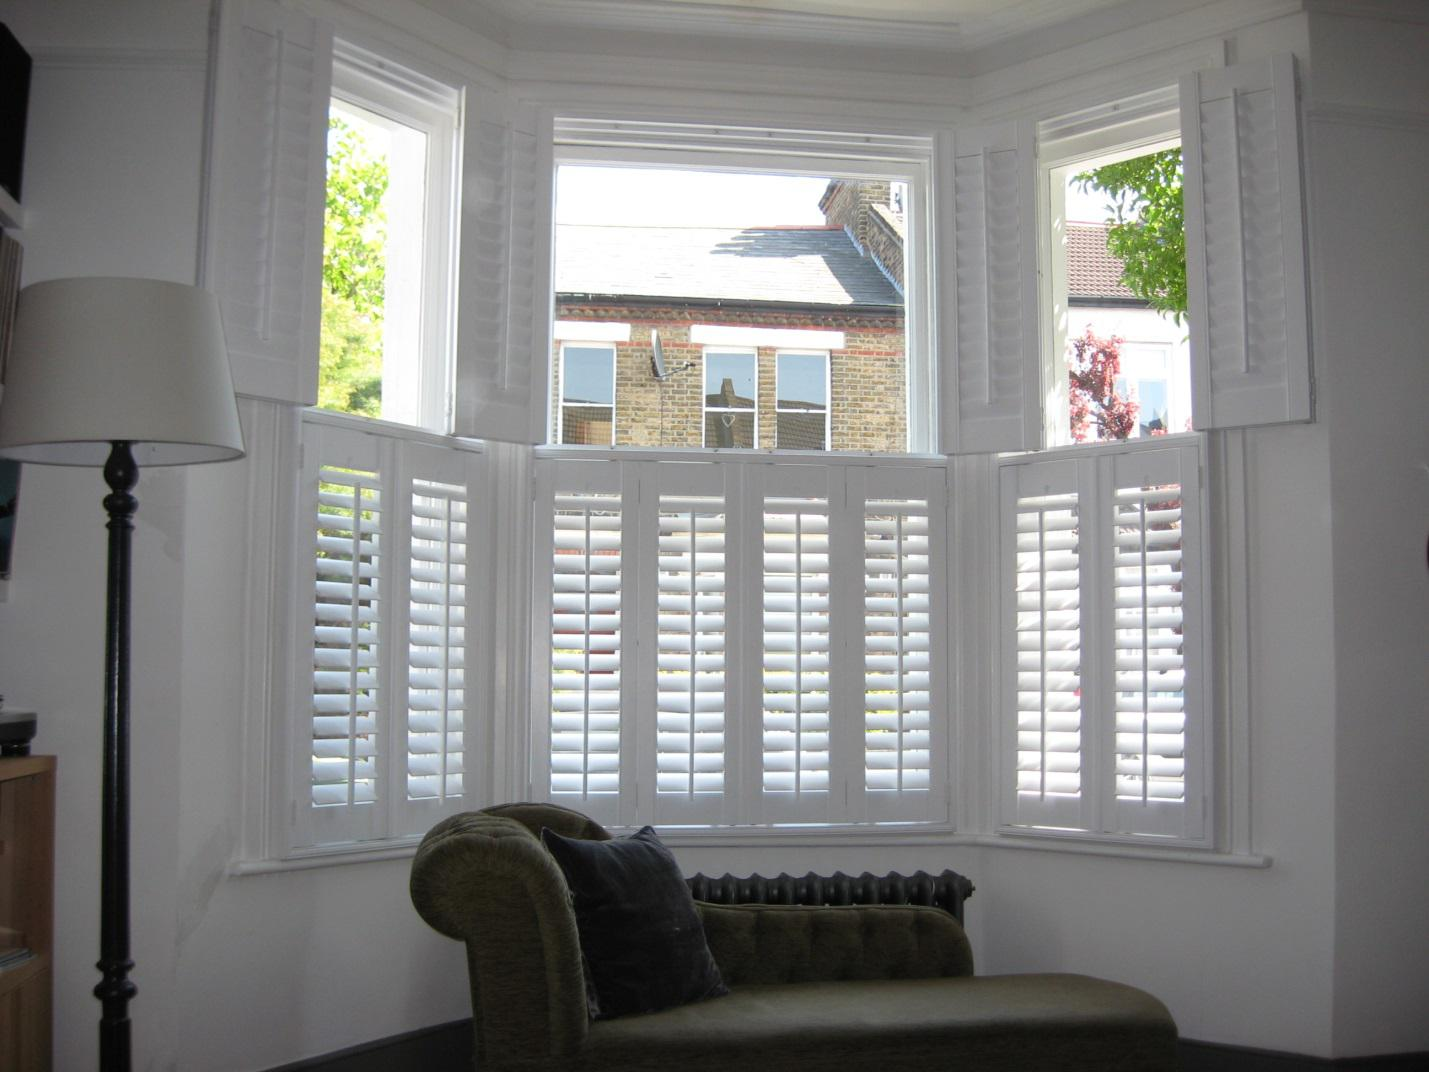 Tier-on-tier plantation shutters